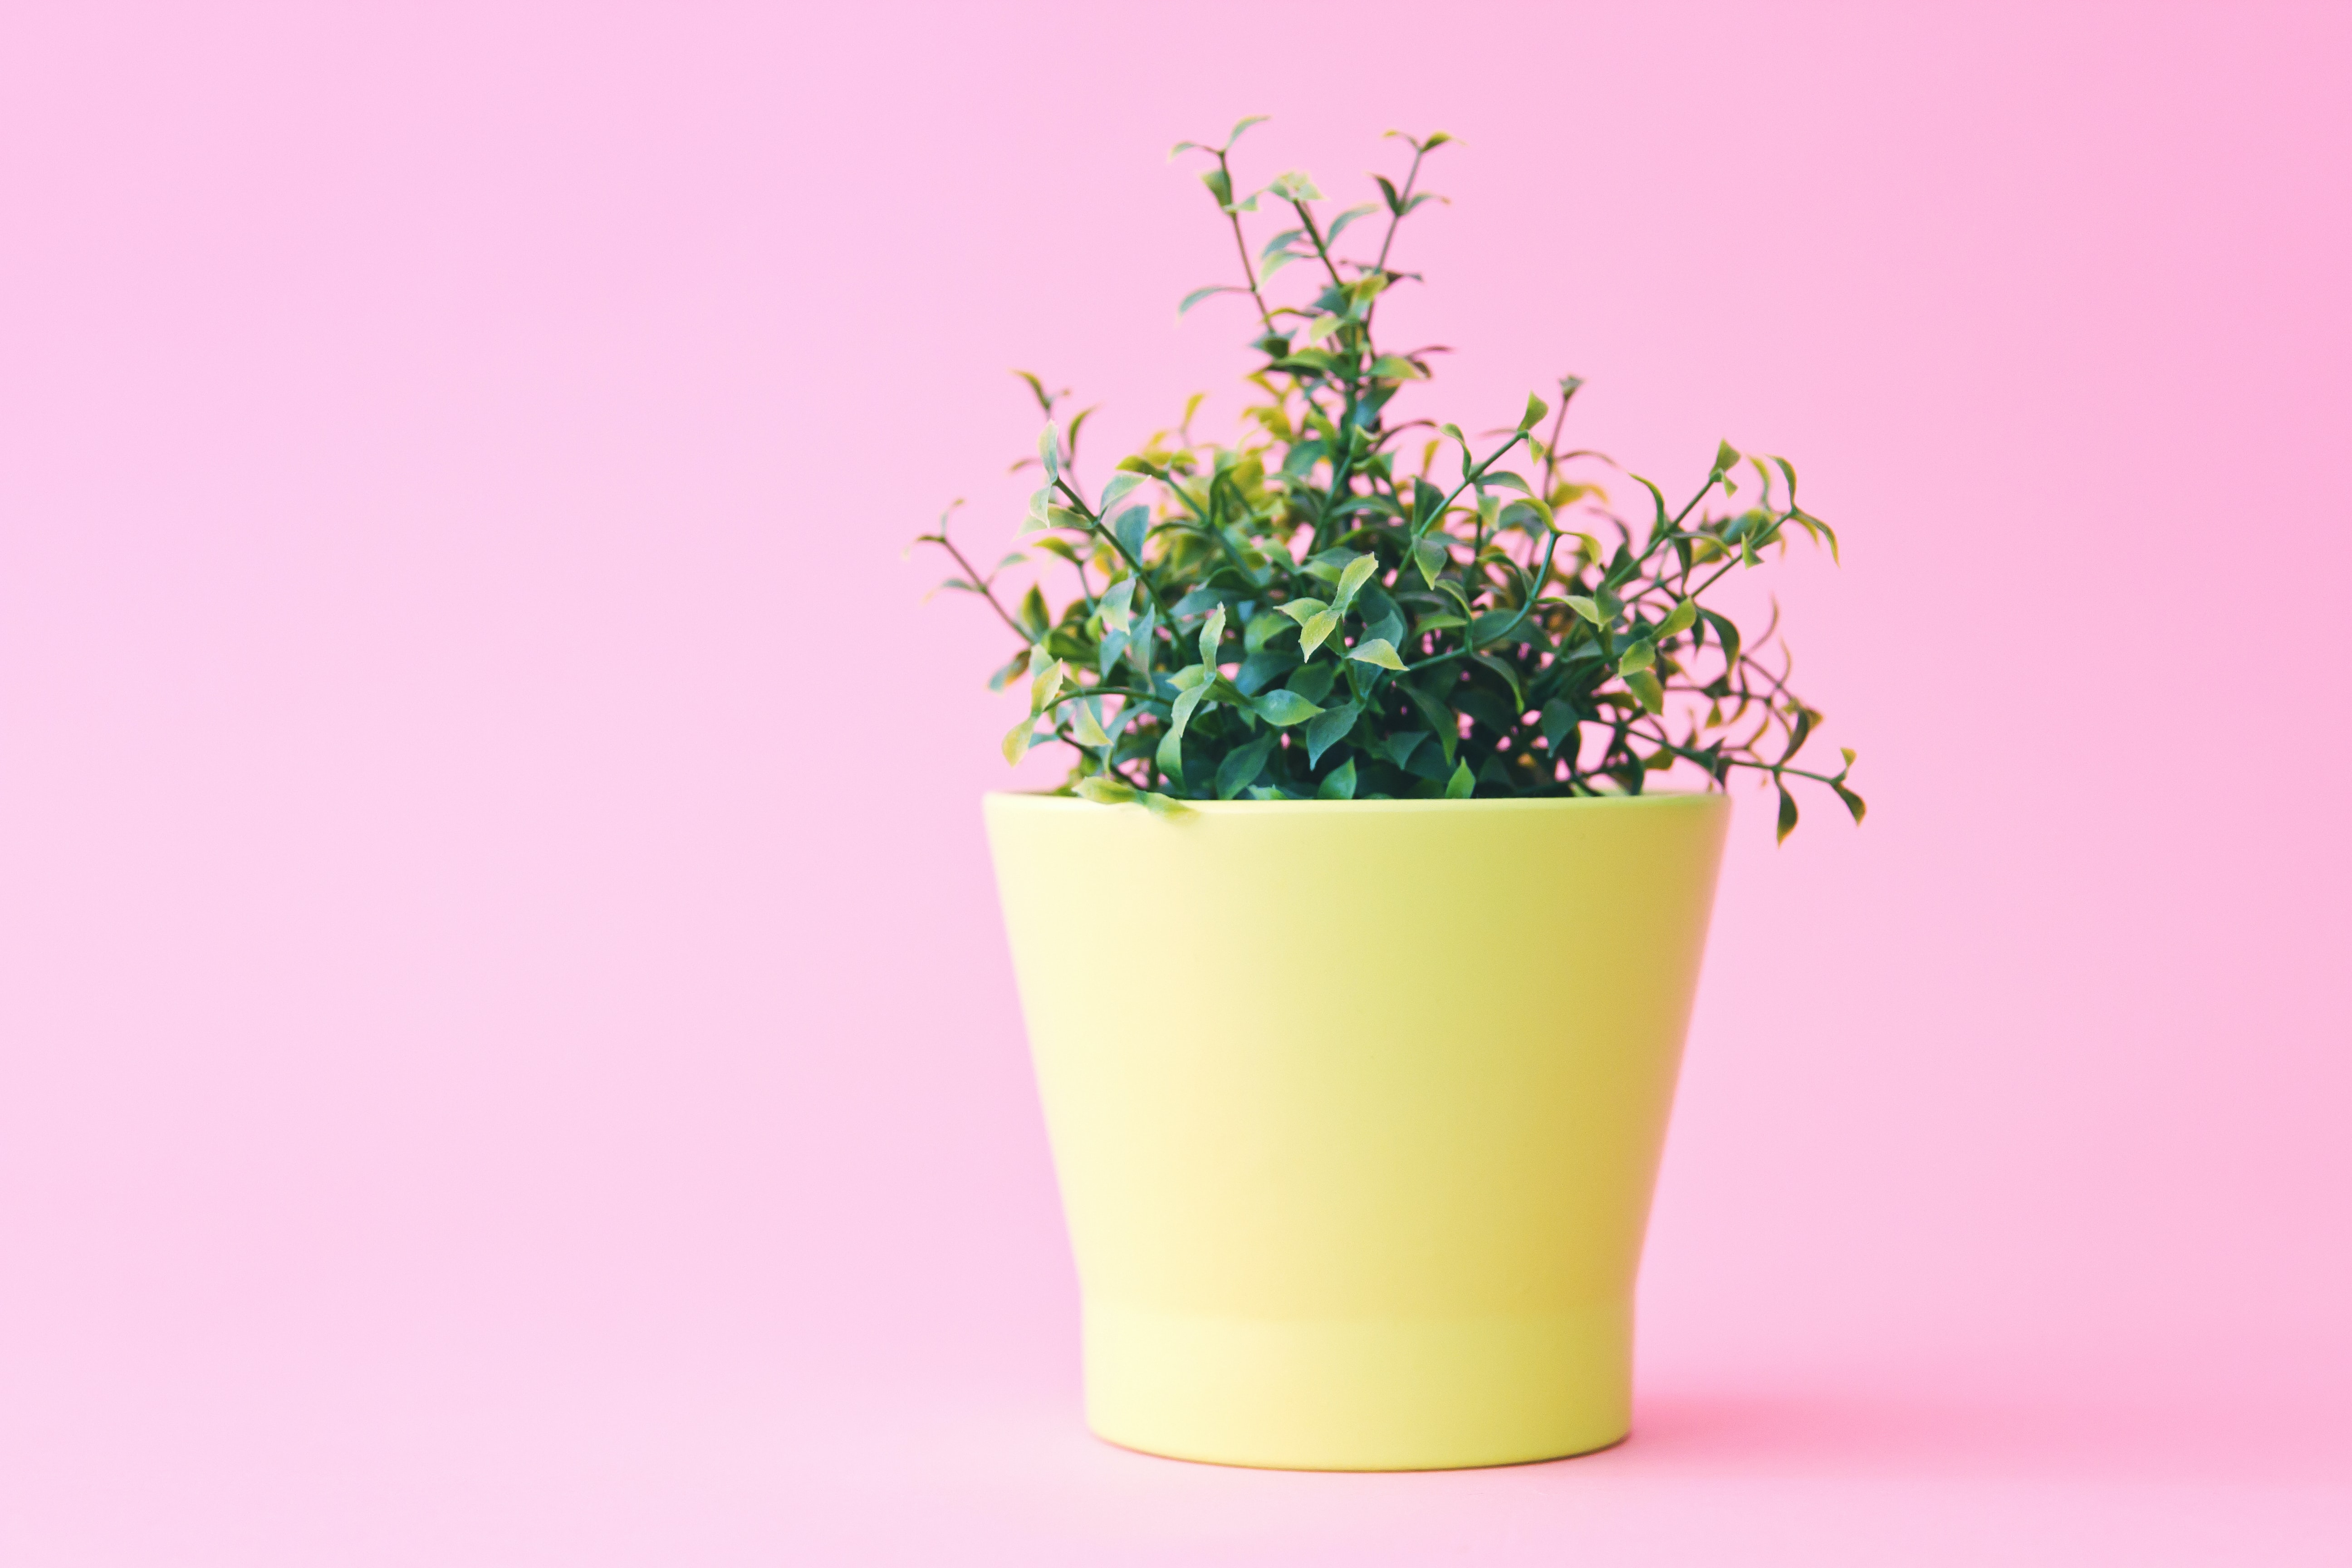 A pot of pink flowers with a pink background.